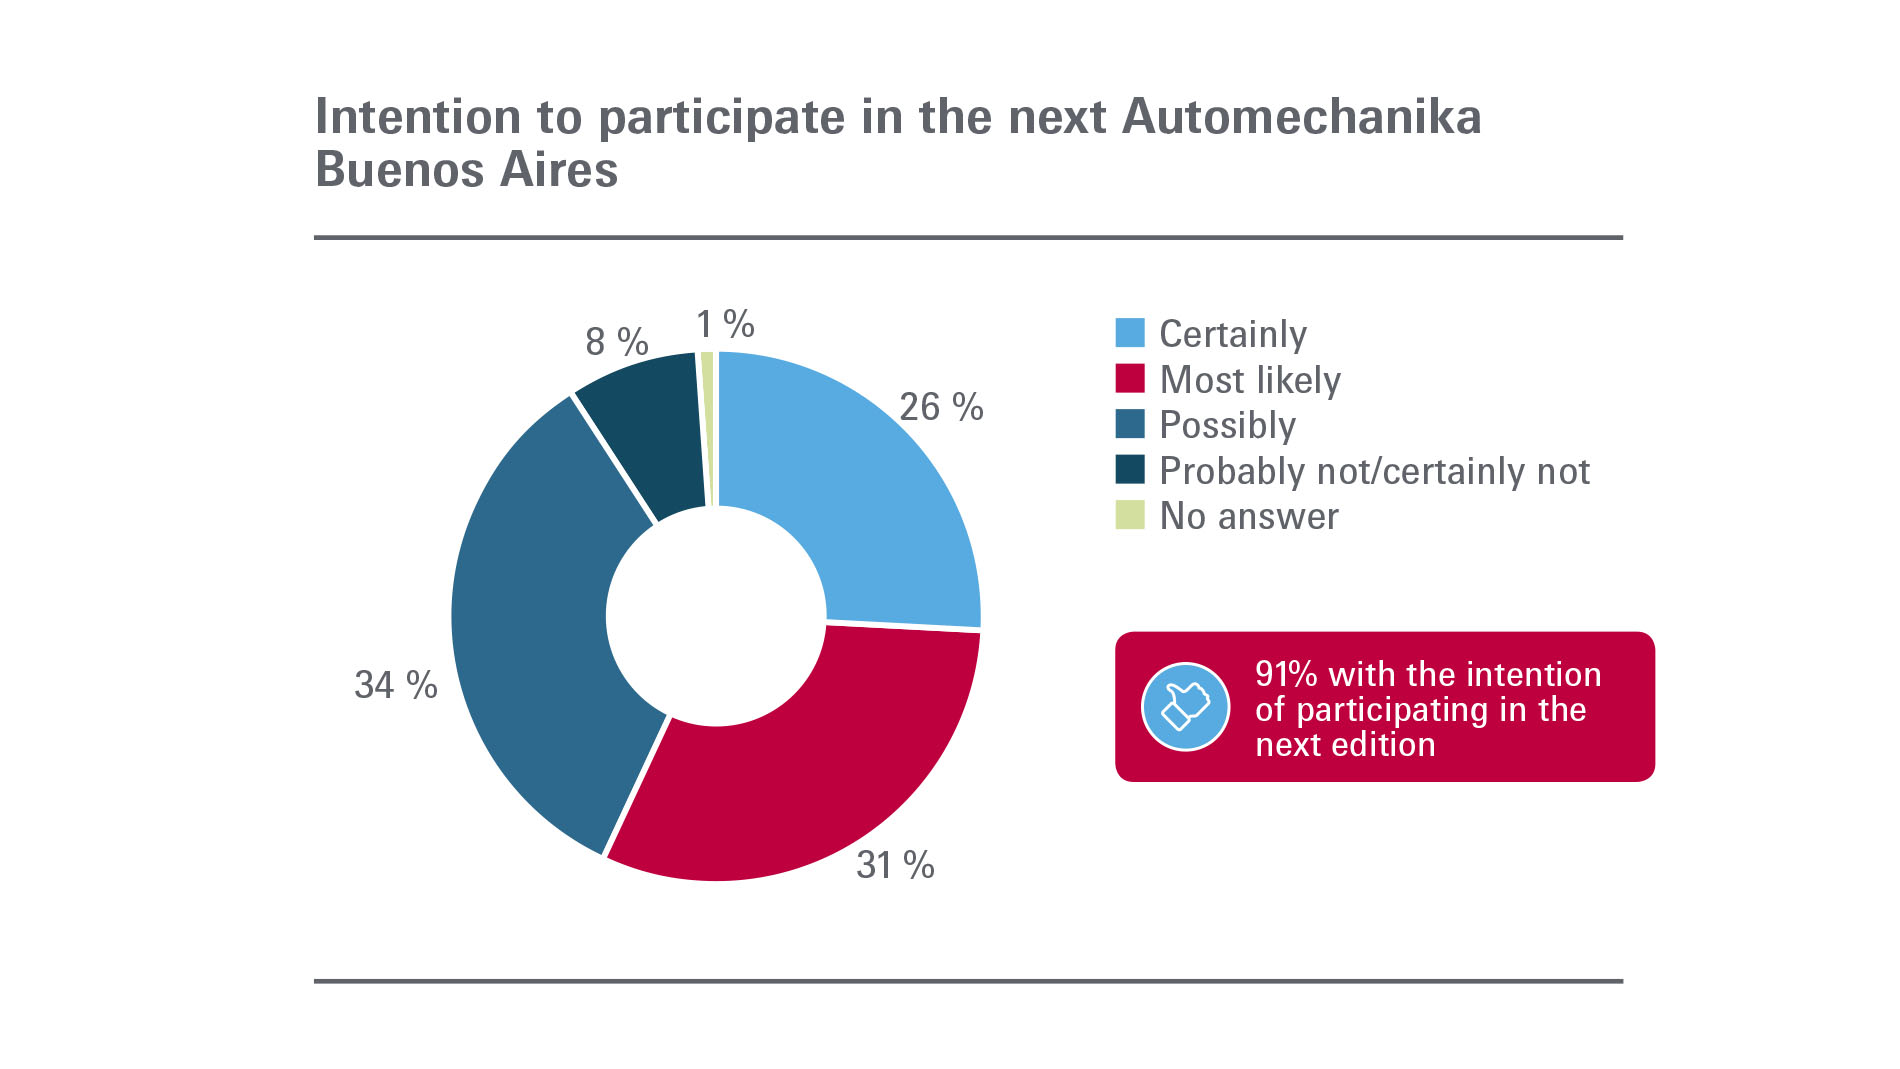 Automechanika Buenos Aires: Exhibitors - intention to participate in next edition